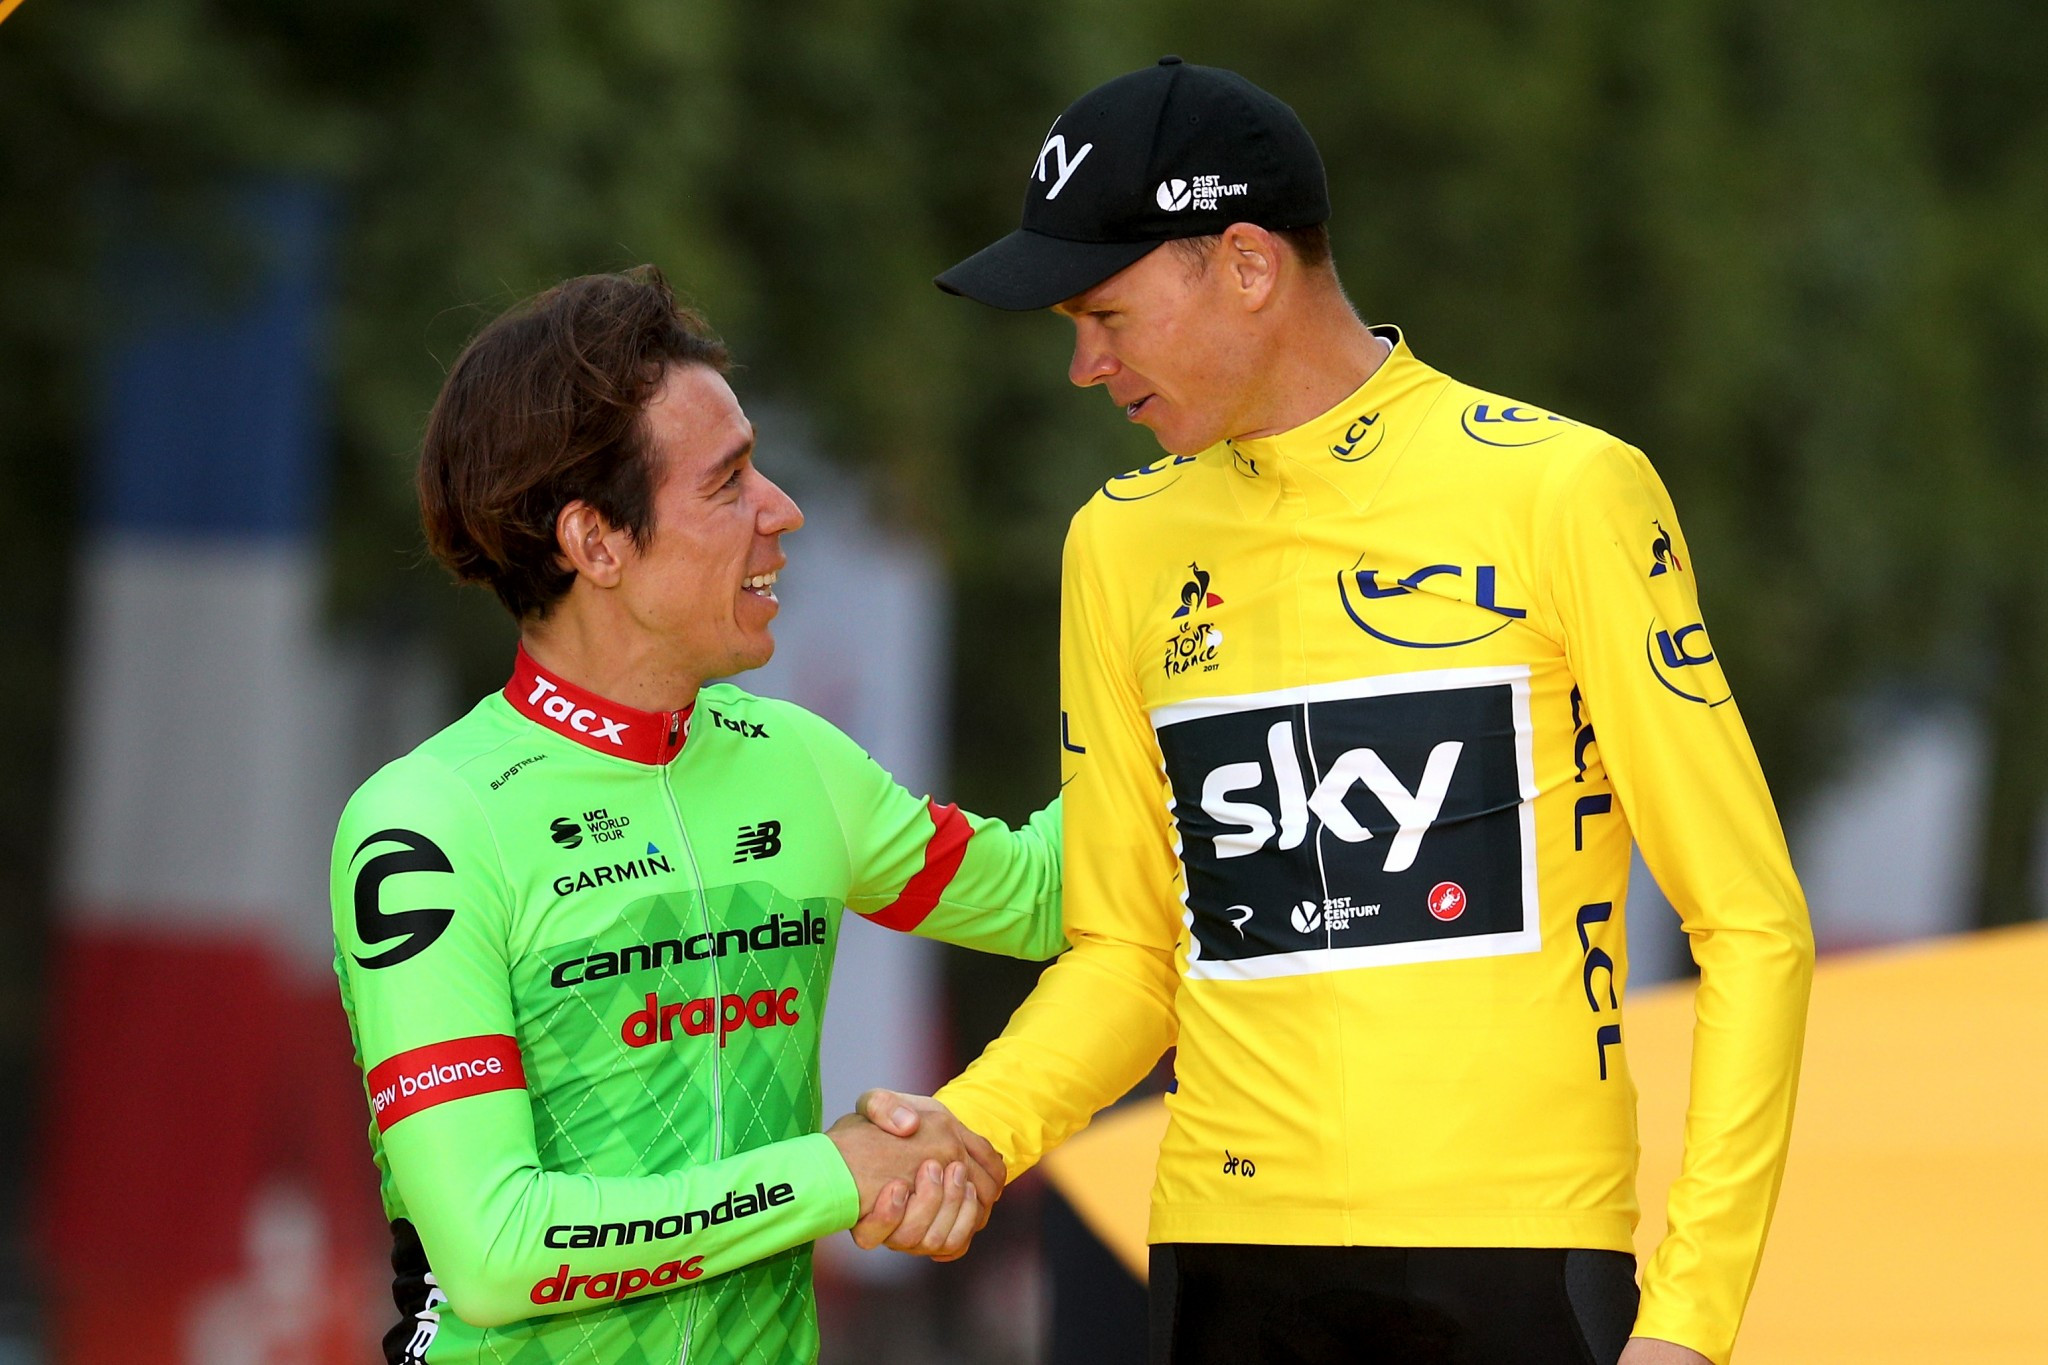 Rigoberto Uran, left, finished second at the Tour de France but faces uncertainty over his team for next year ©Getty Images